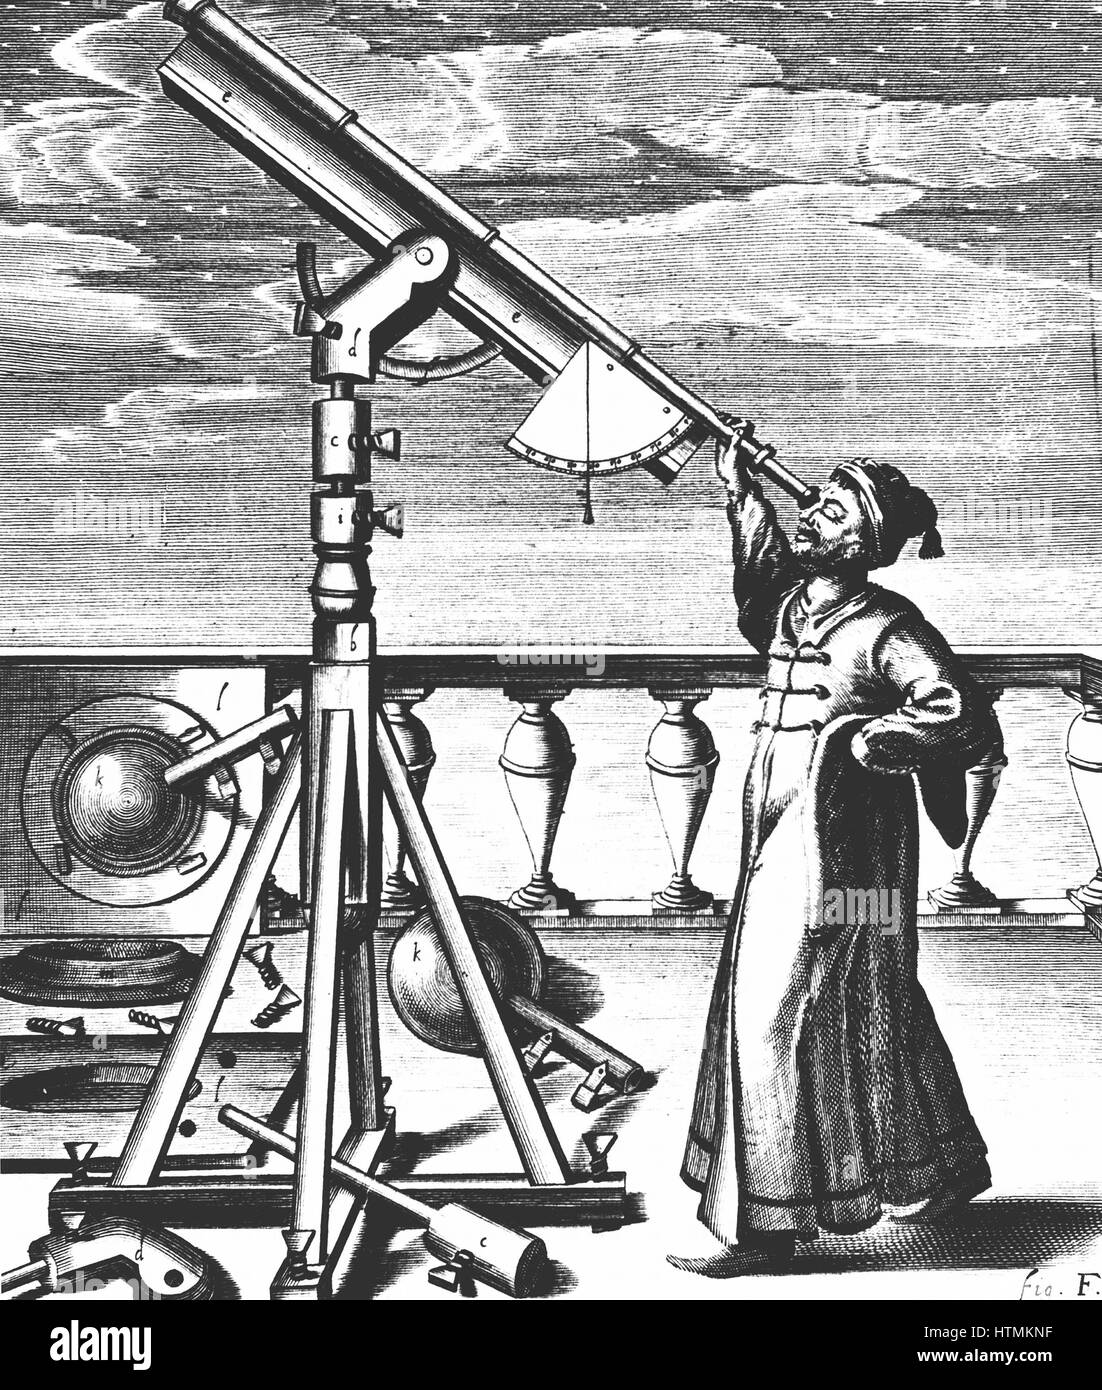 Hevelius observing through refracting telescope on stand fitted with quadrant and plumb-bob so altitude of object Stock Photo